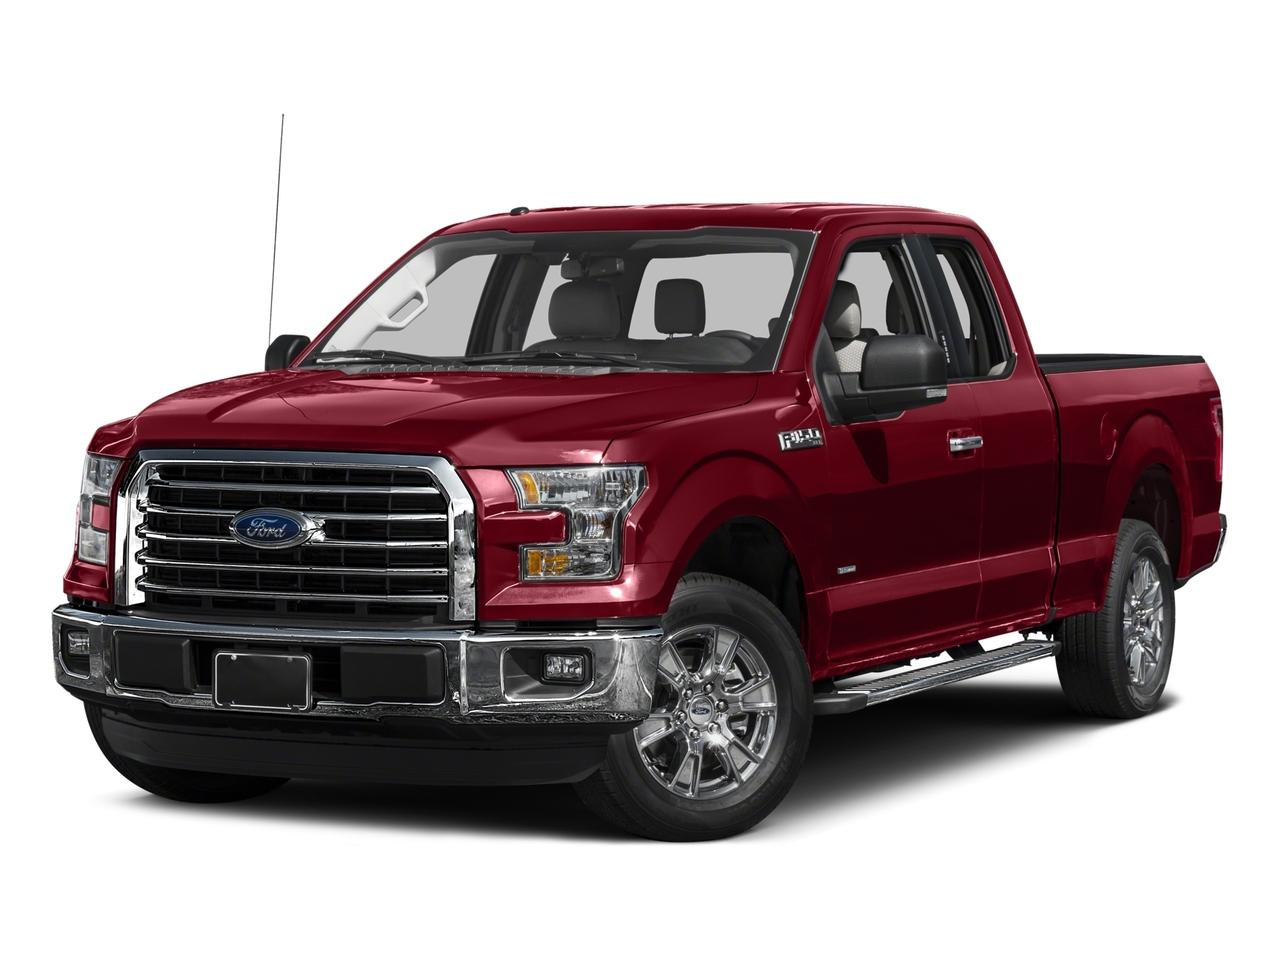 2015 Ford F-150 Vehicle Photo in Baltimore, MD 21207